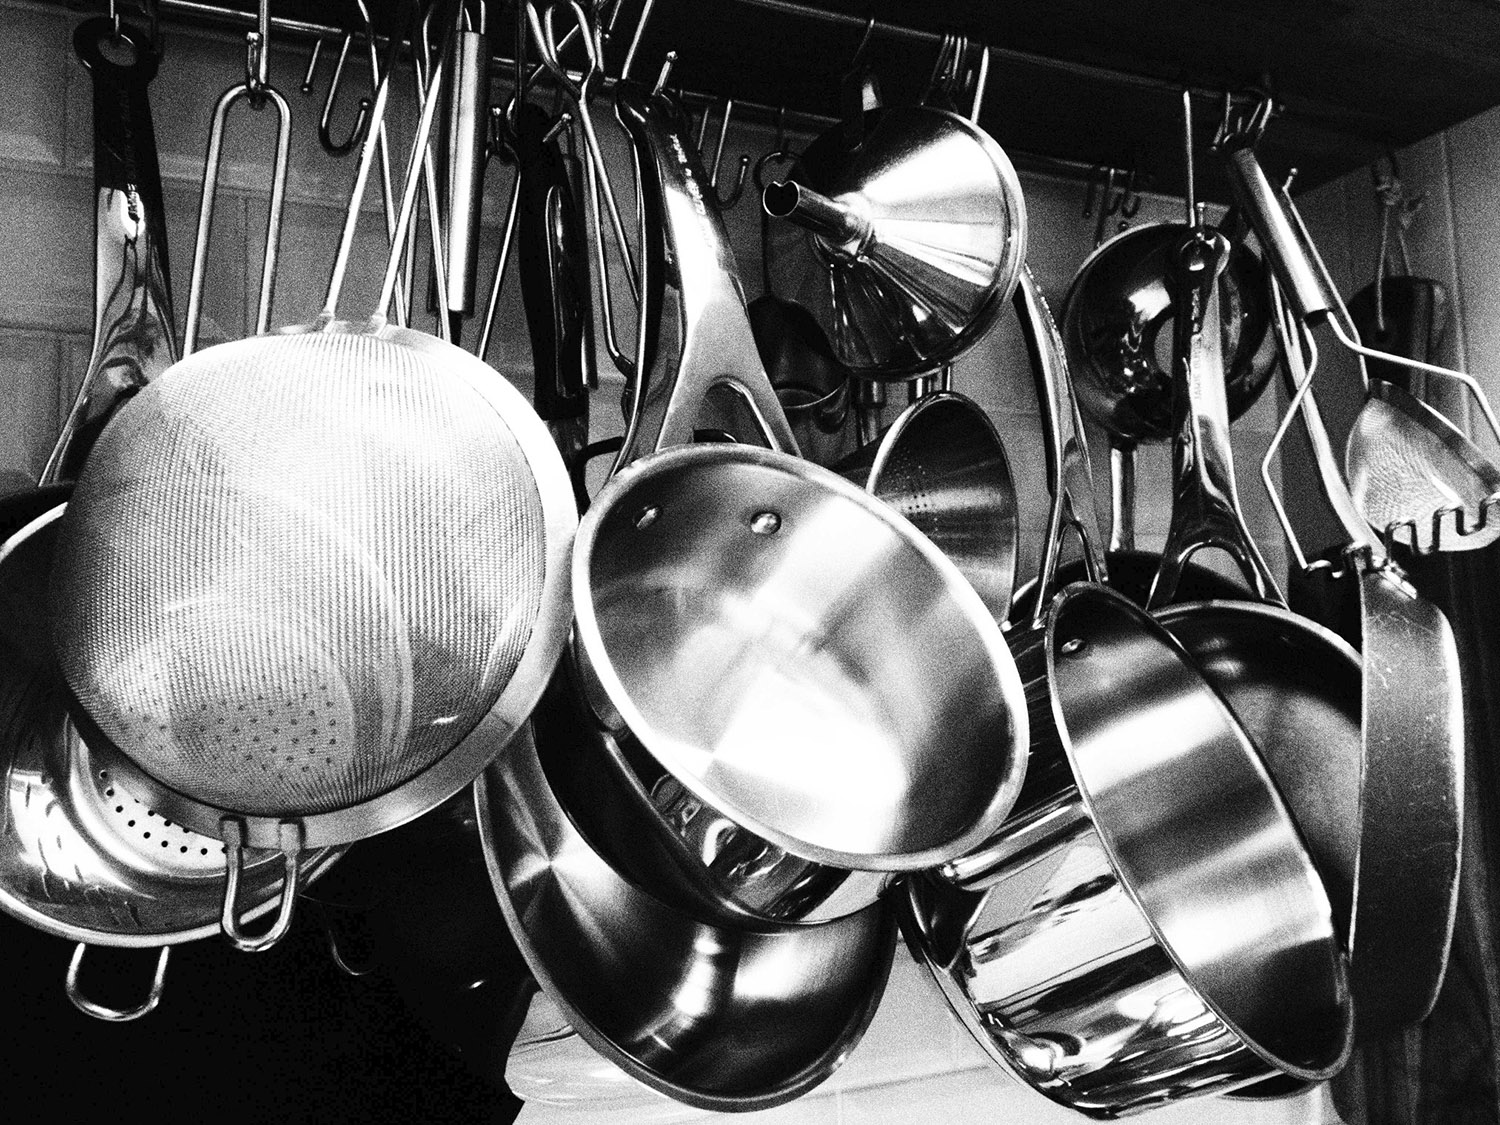 Kitchen Utensils | Neil Hennessy-Vass